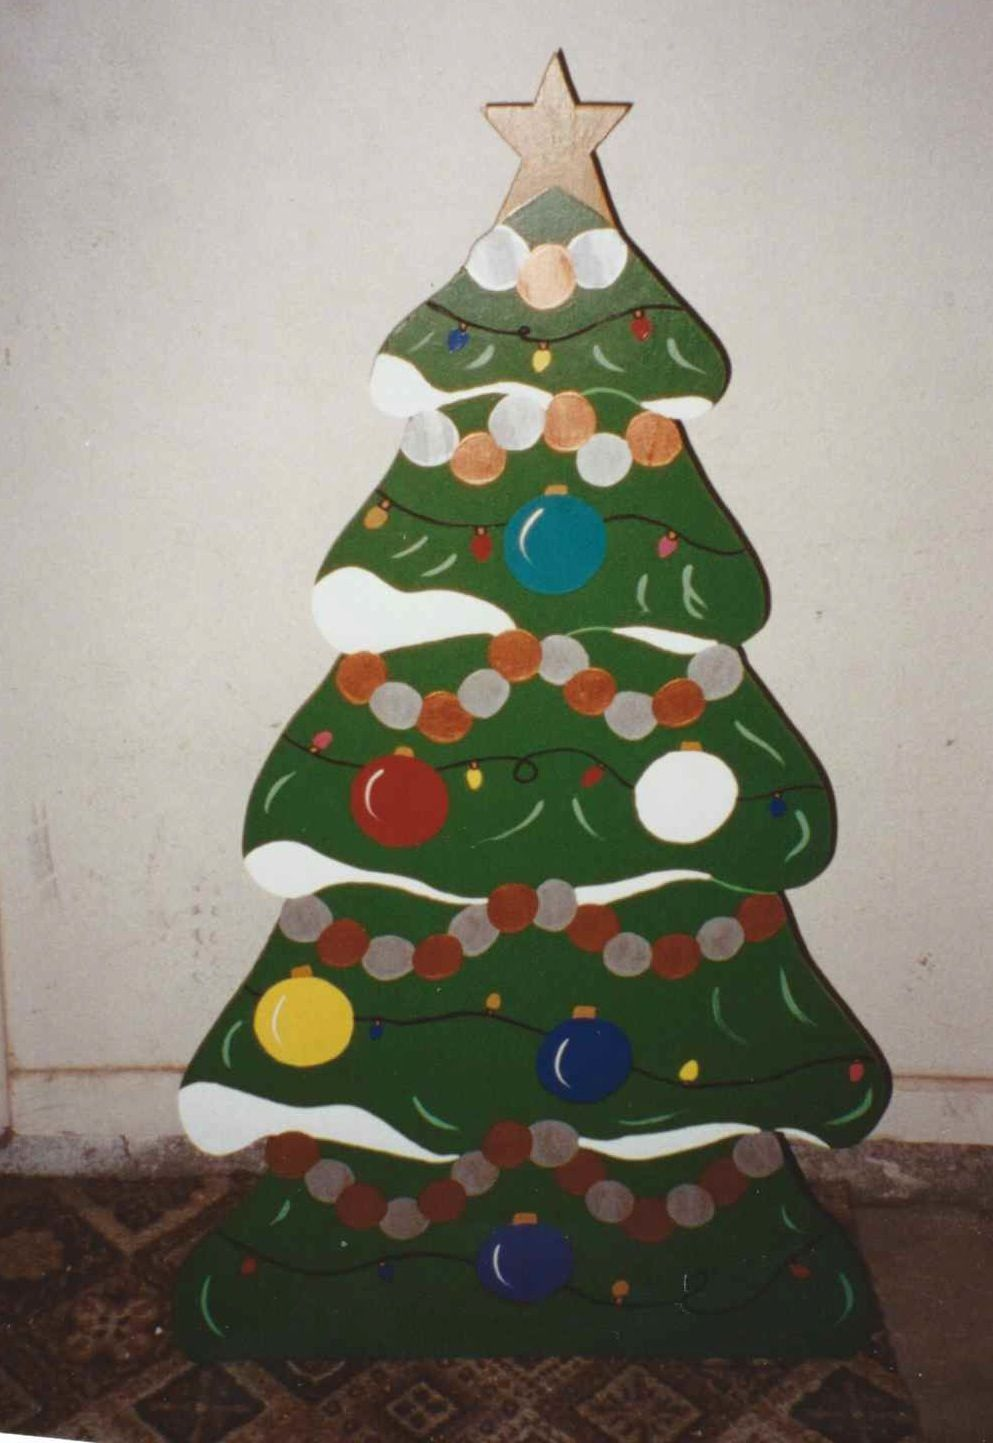 Small Christmas Tree Christmas Yard Decoration I Made From Plywood About 2 Christmas Yard Decorations Small Christmas Trees Christmas Decorations Diy Outdoor